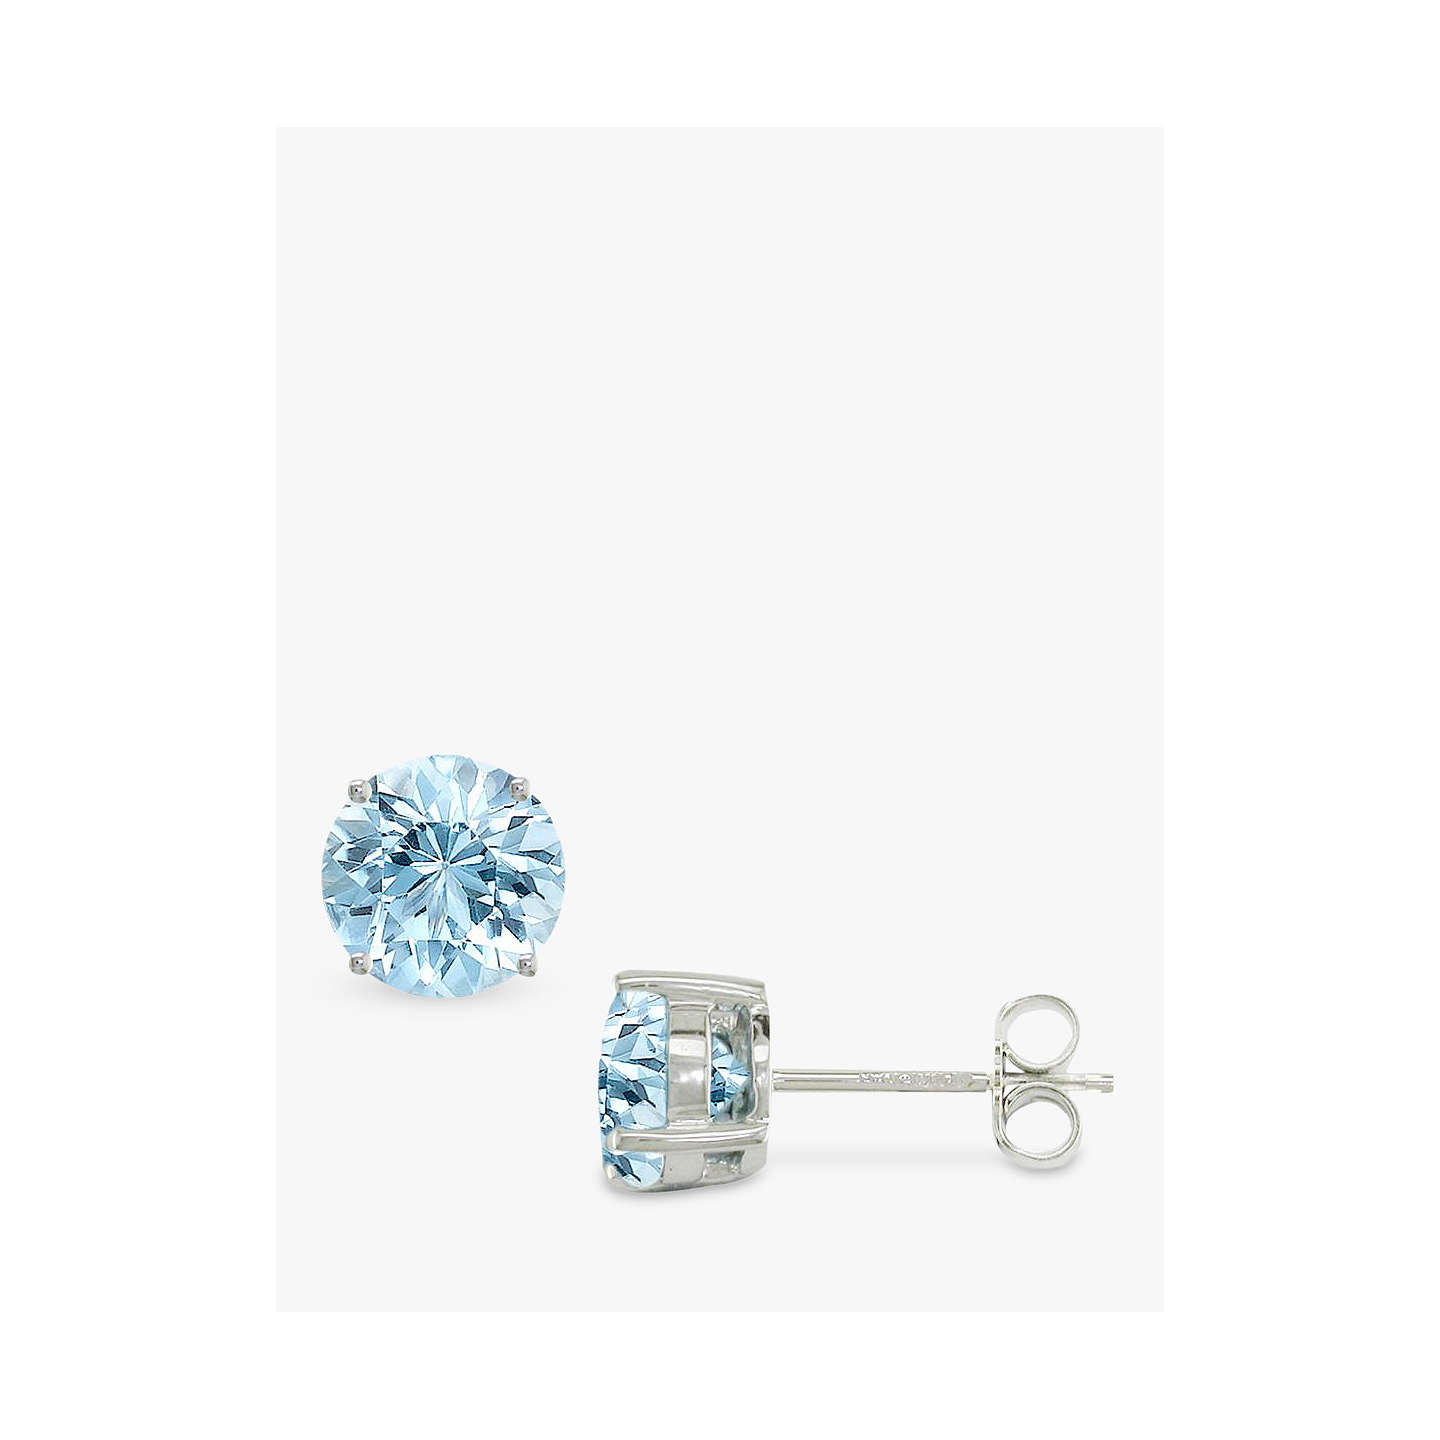 gallery march aqua pandora birthstone display xebt aquamarine model shot stud eh earrings item marine